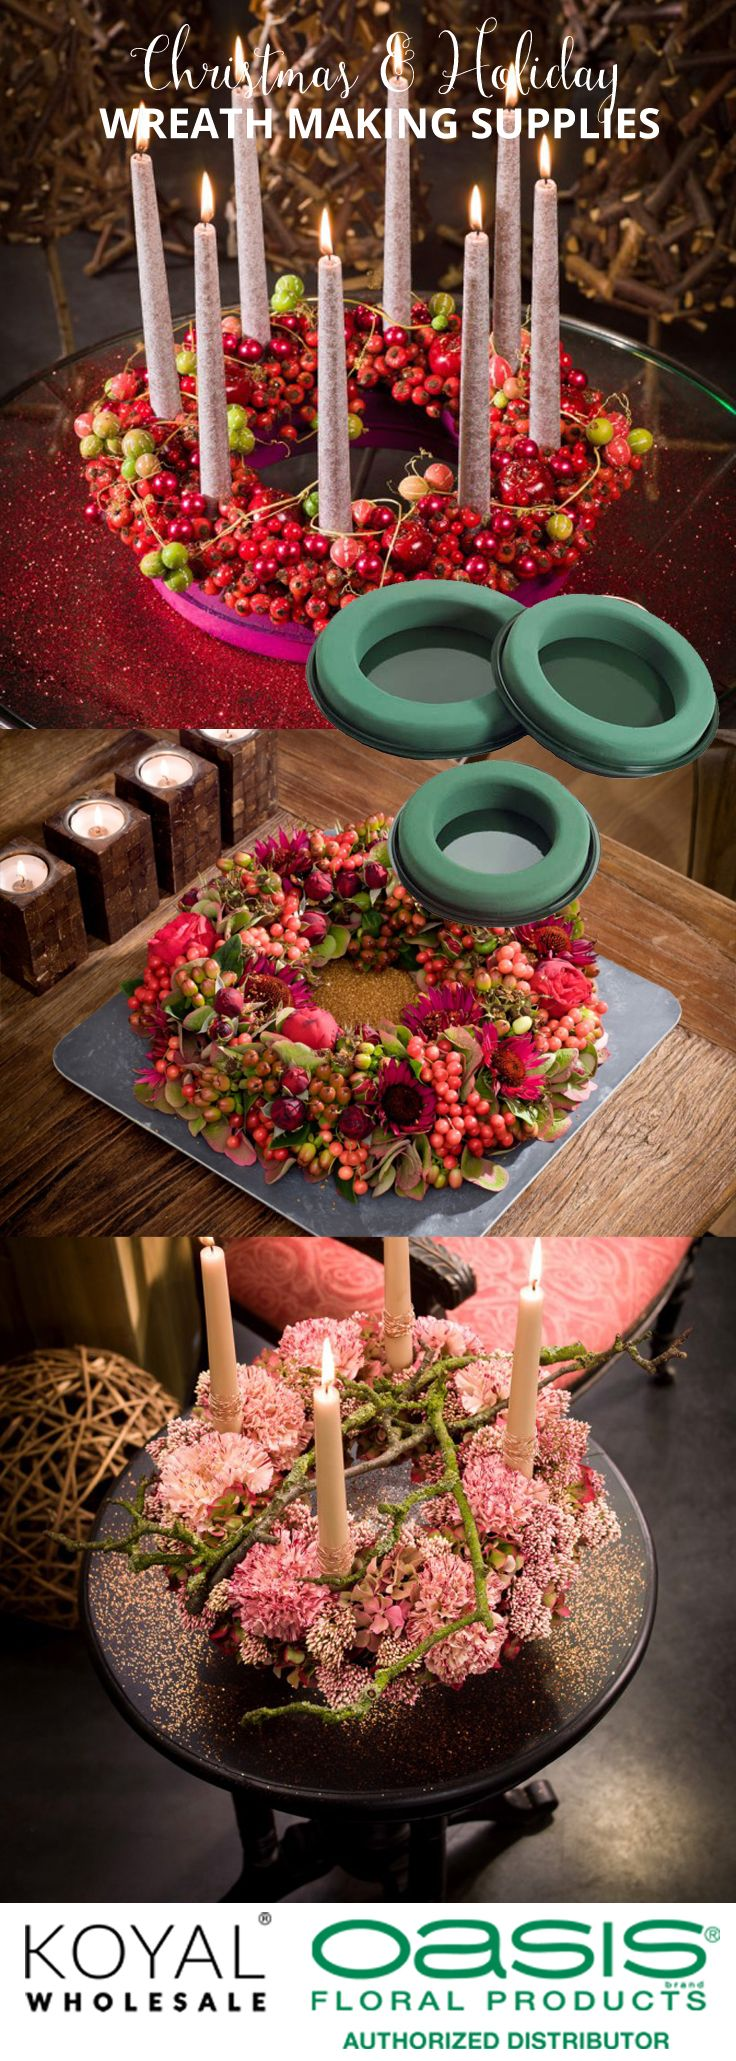 Christmas wreath making supplies, floral foam rings, table garland foam, floral foam cones, candle stakes, ribbon, floral wire, and more.  FREE SHIPPING ON ANY ORDERS.